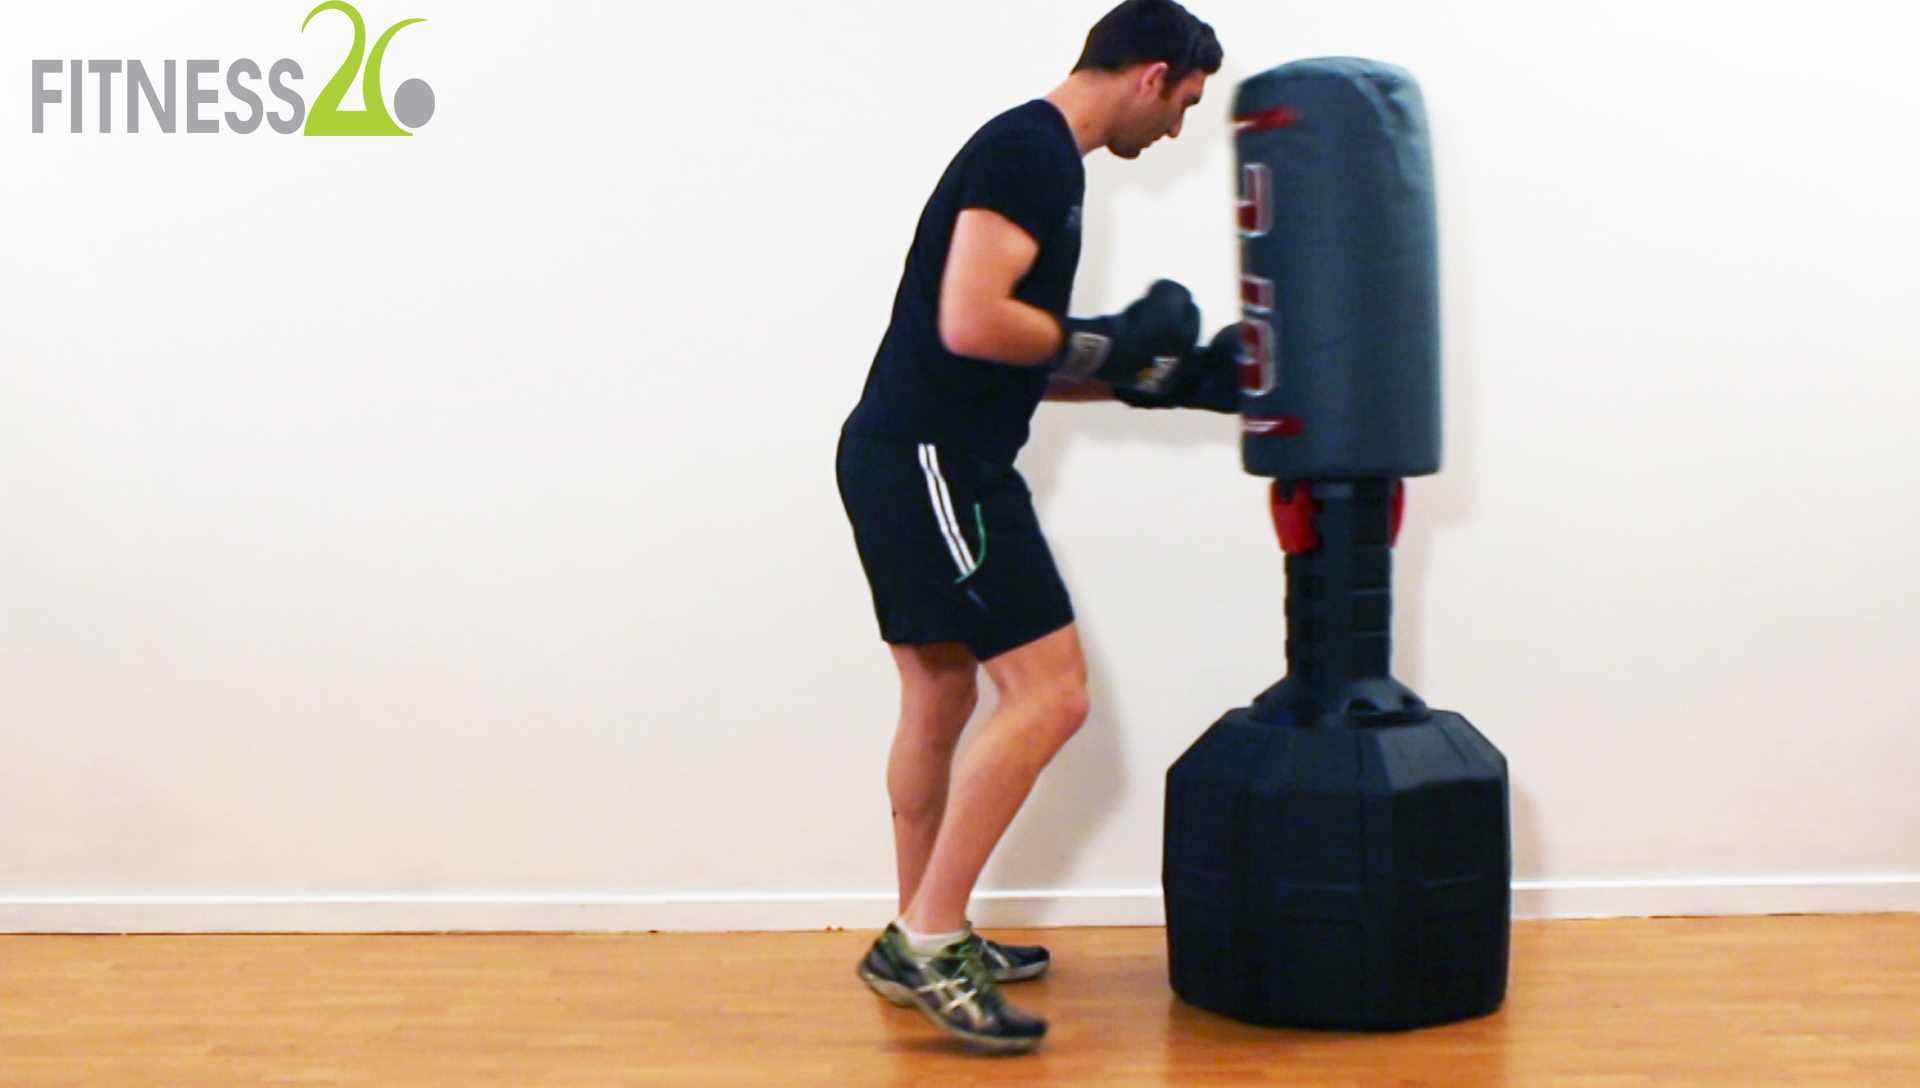 Josh – Quickstart Routine: Ending Off boxing (Cardio based)